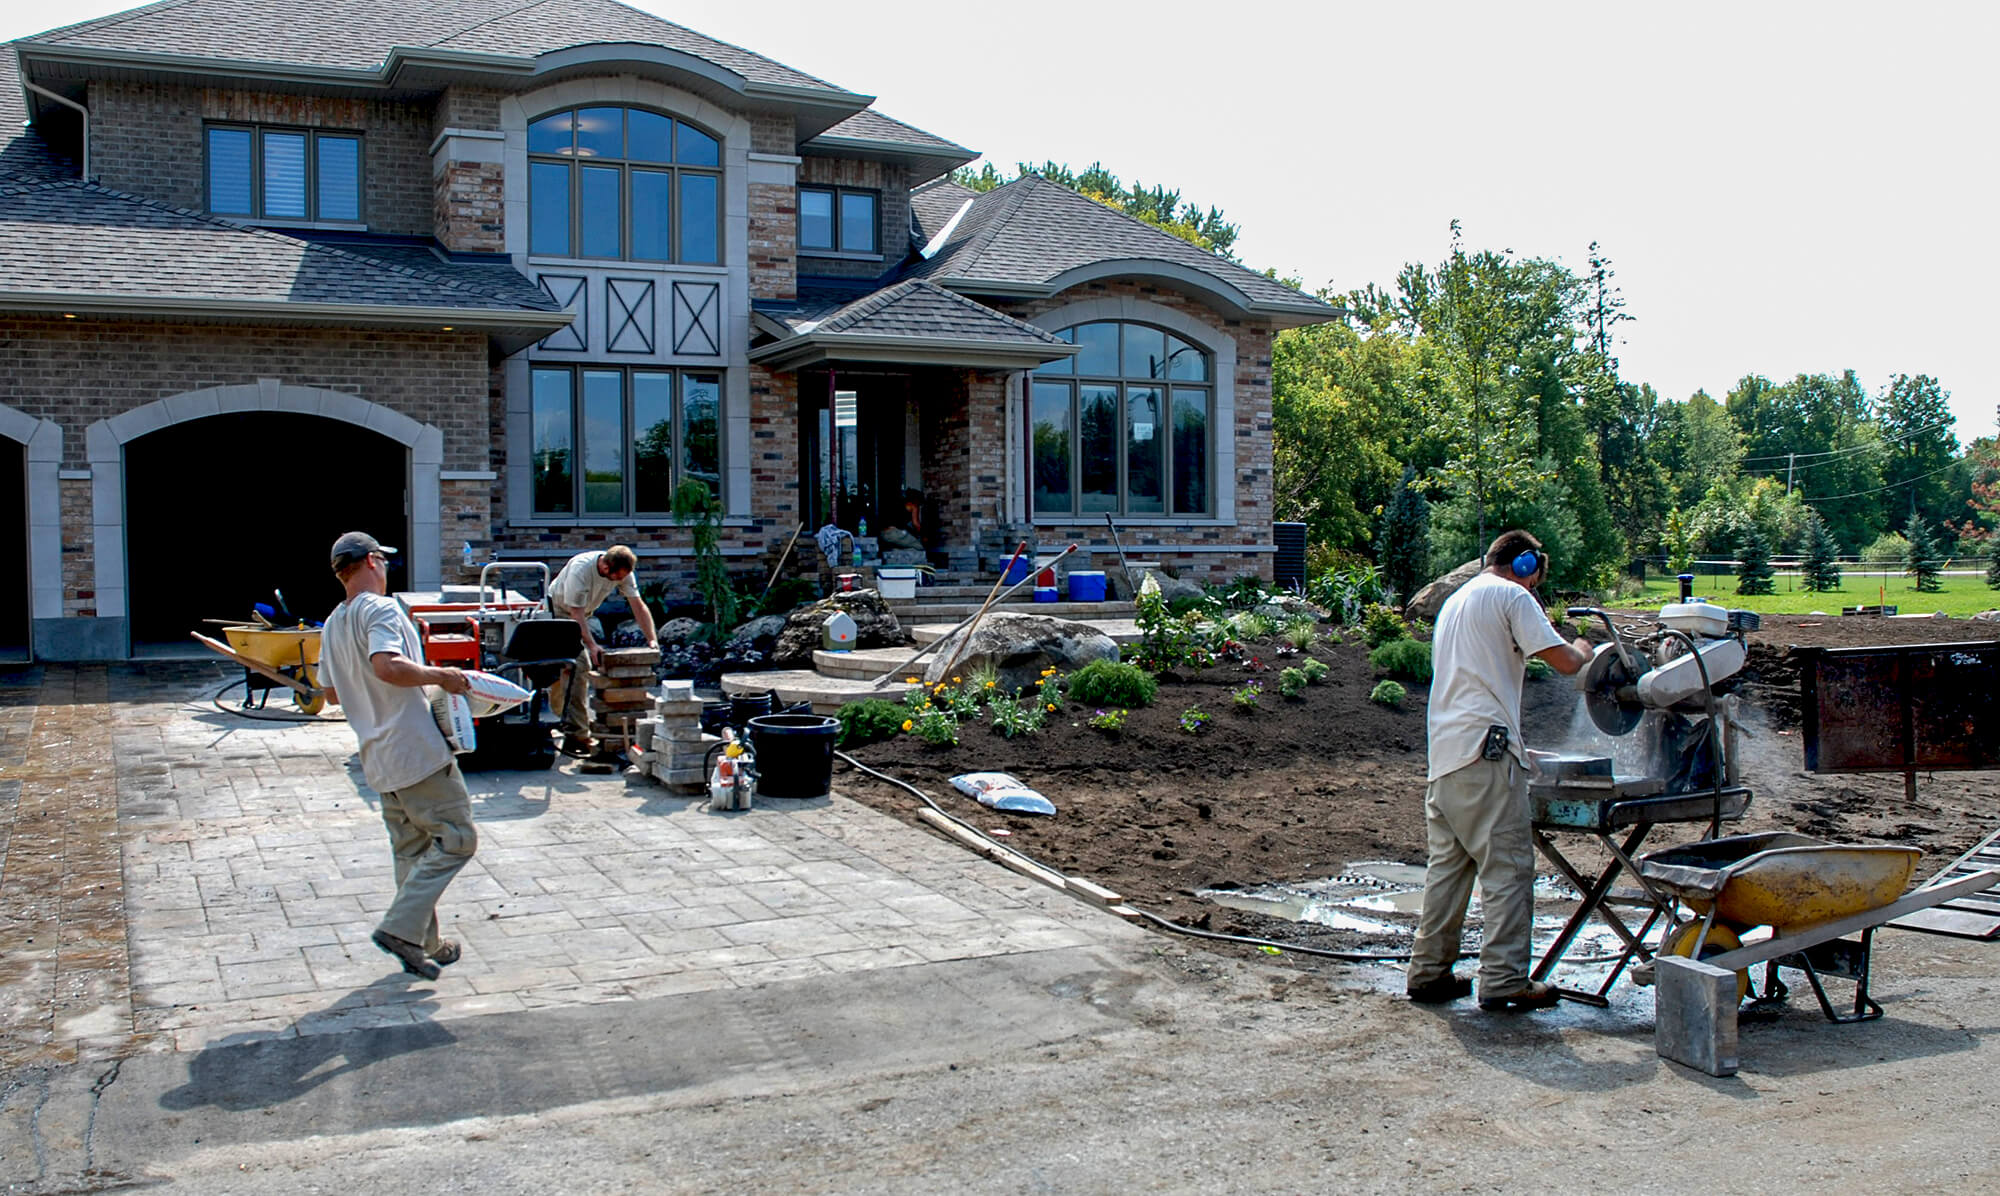 men working on the landscape in the front yard of a home